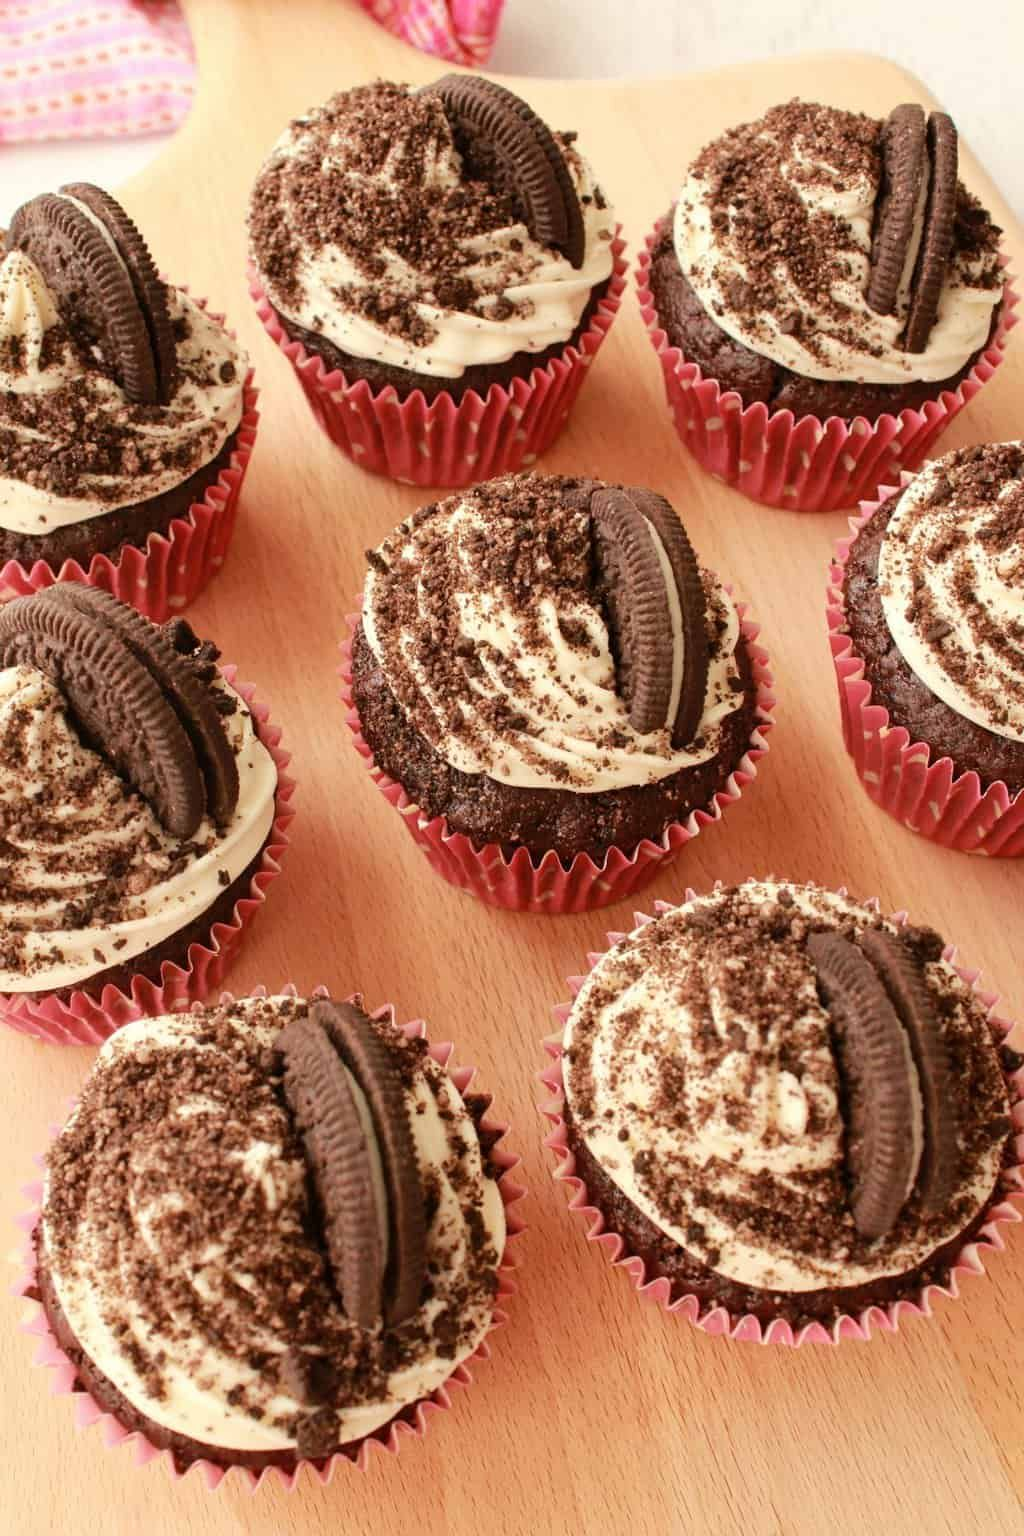 Rich And Moist Vegan Oreo Cupcakes With Vanilla Frosting Oreo Sprinkles And An Entire Oreo Cookie Baked Into The Oreo Cupcakes Dessert Recipies Sweet Cookies